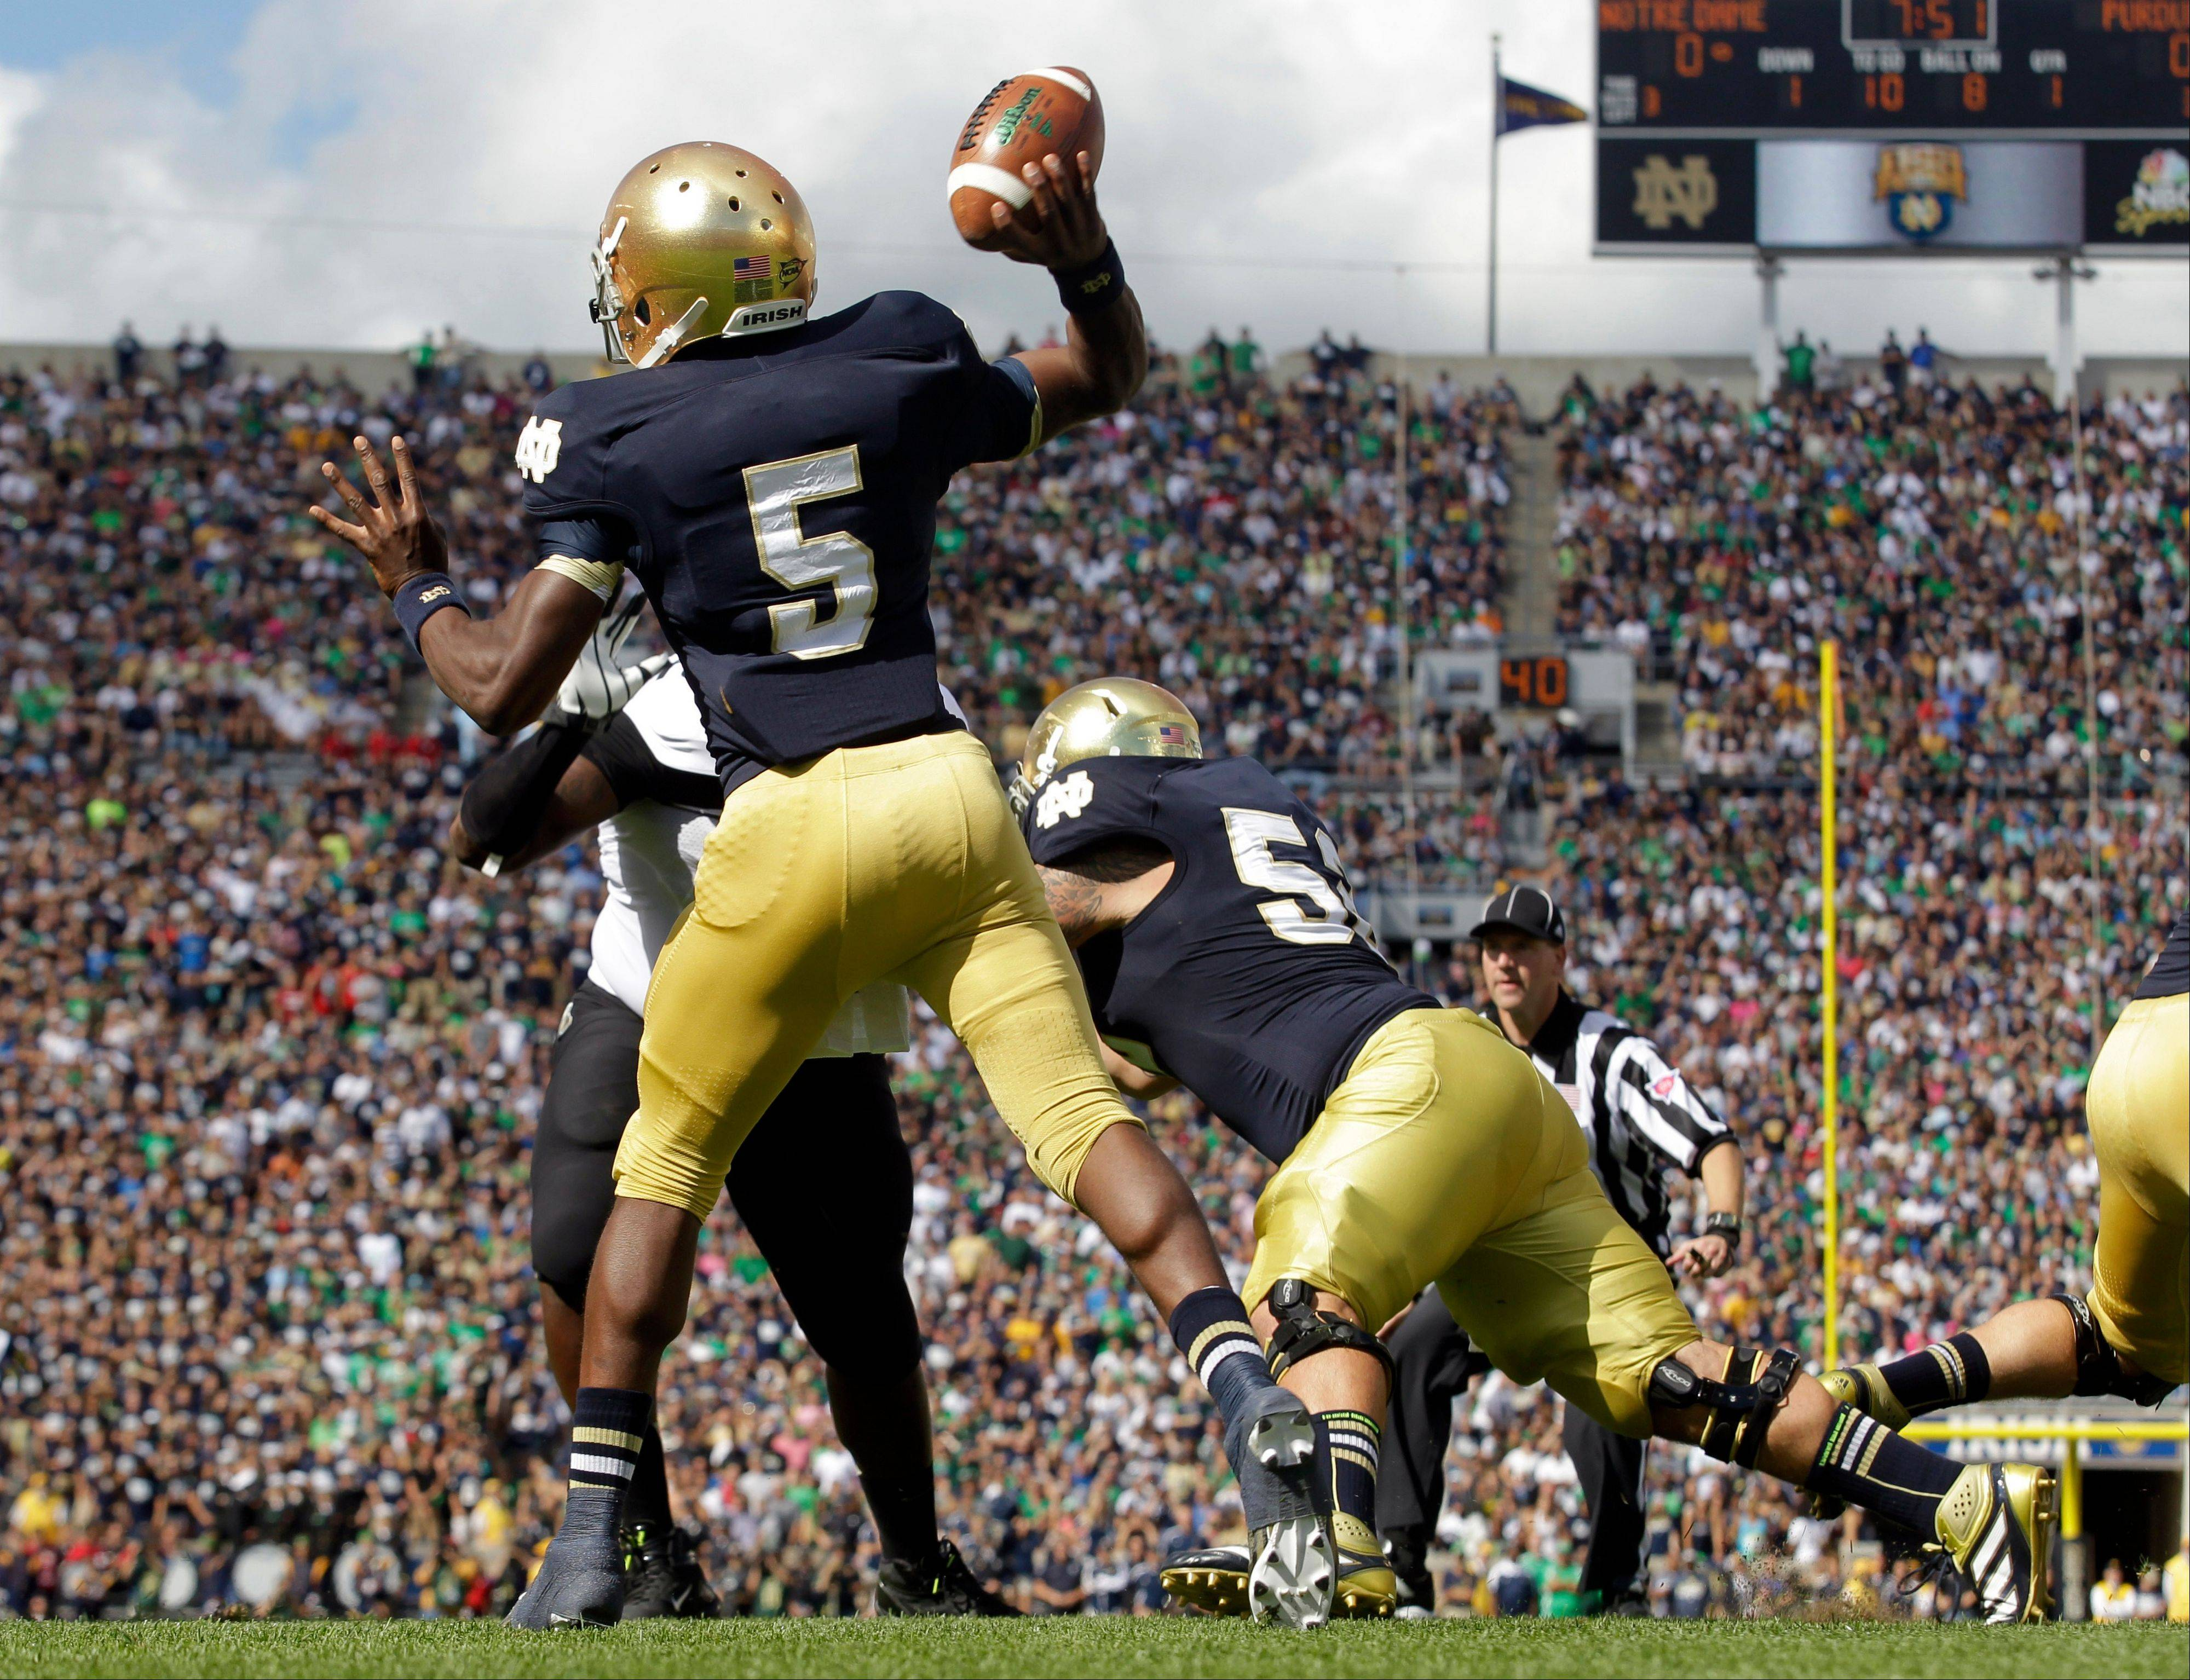 Notre Dame quarterback Everett Golson looks to pass as centner Braxston Cave, right, blocks during the first half against Purdue in South Bend, Ind. All too often last week the Irish offensive line struggled against Purdue, allowing four sacks and rushing for just 53 yards. The linemen are looking for redemption against No. 10 Michigan State's tough defensive line on Saturday.